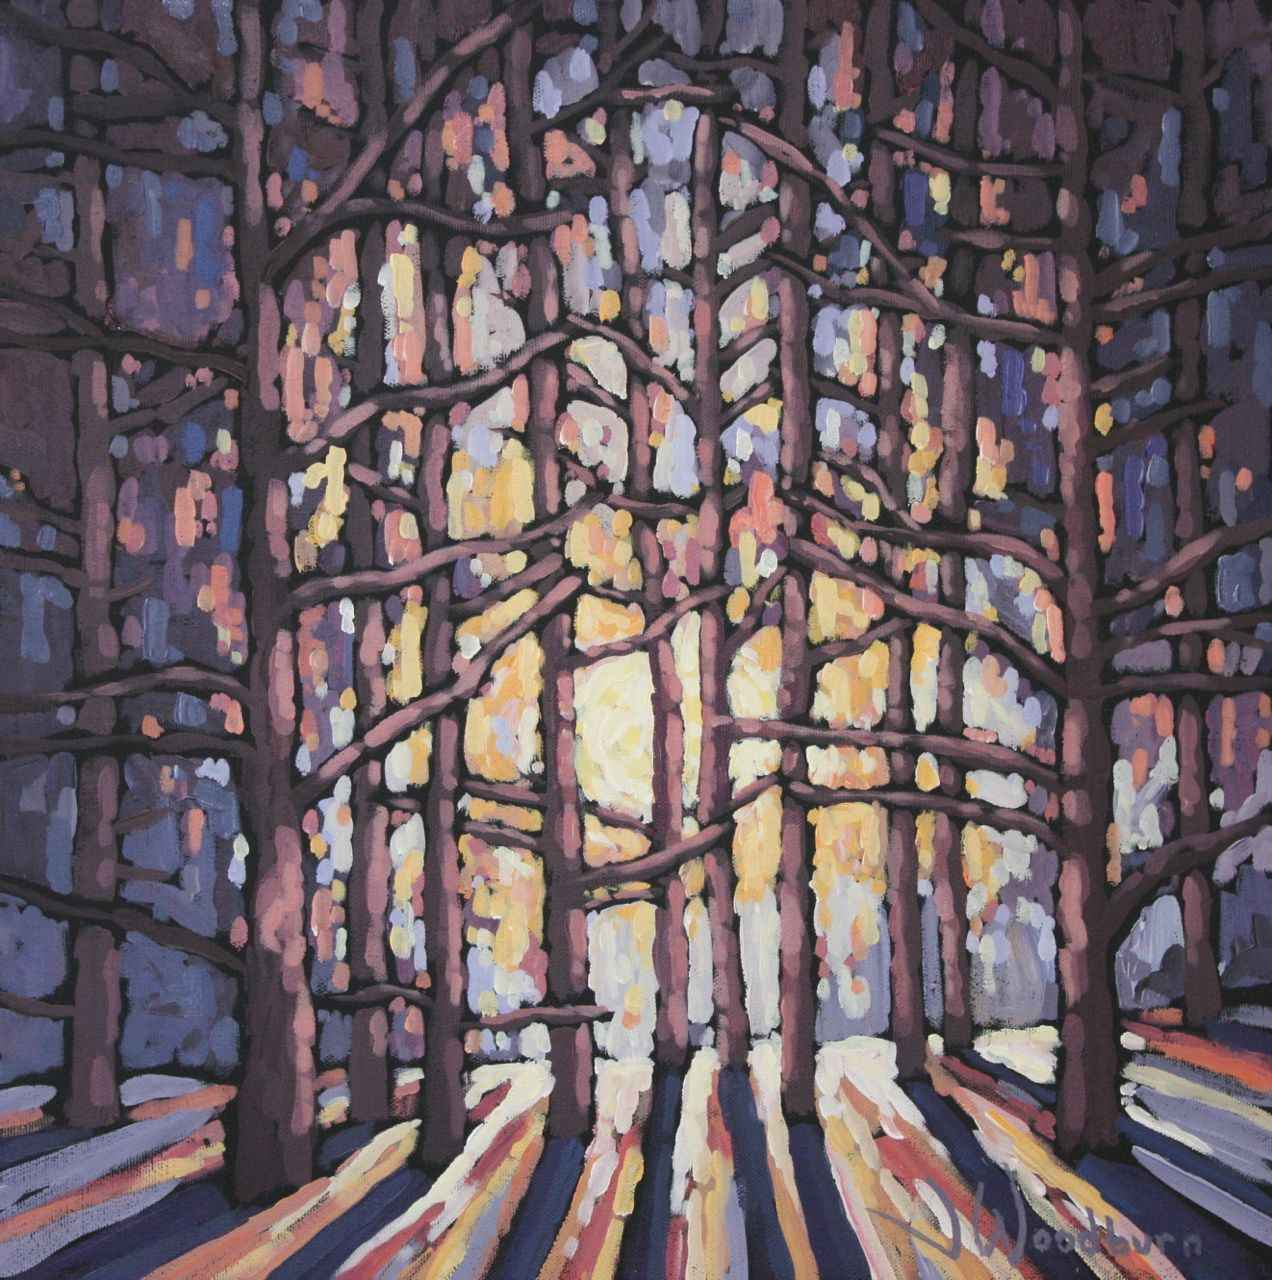 Shadows In The Aftern... by Ms Jennifer Woodburn - Masterpiece Online